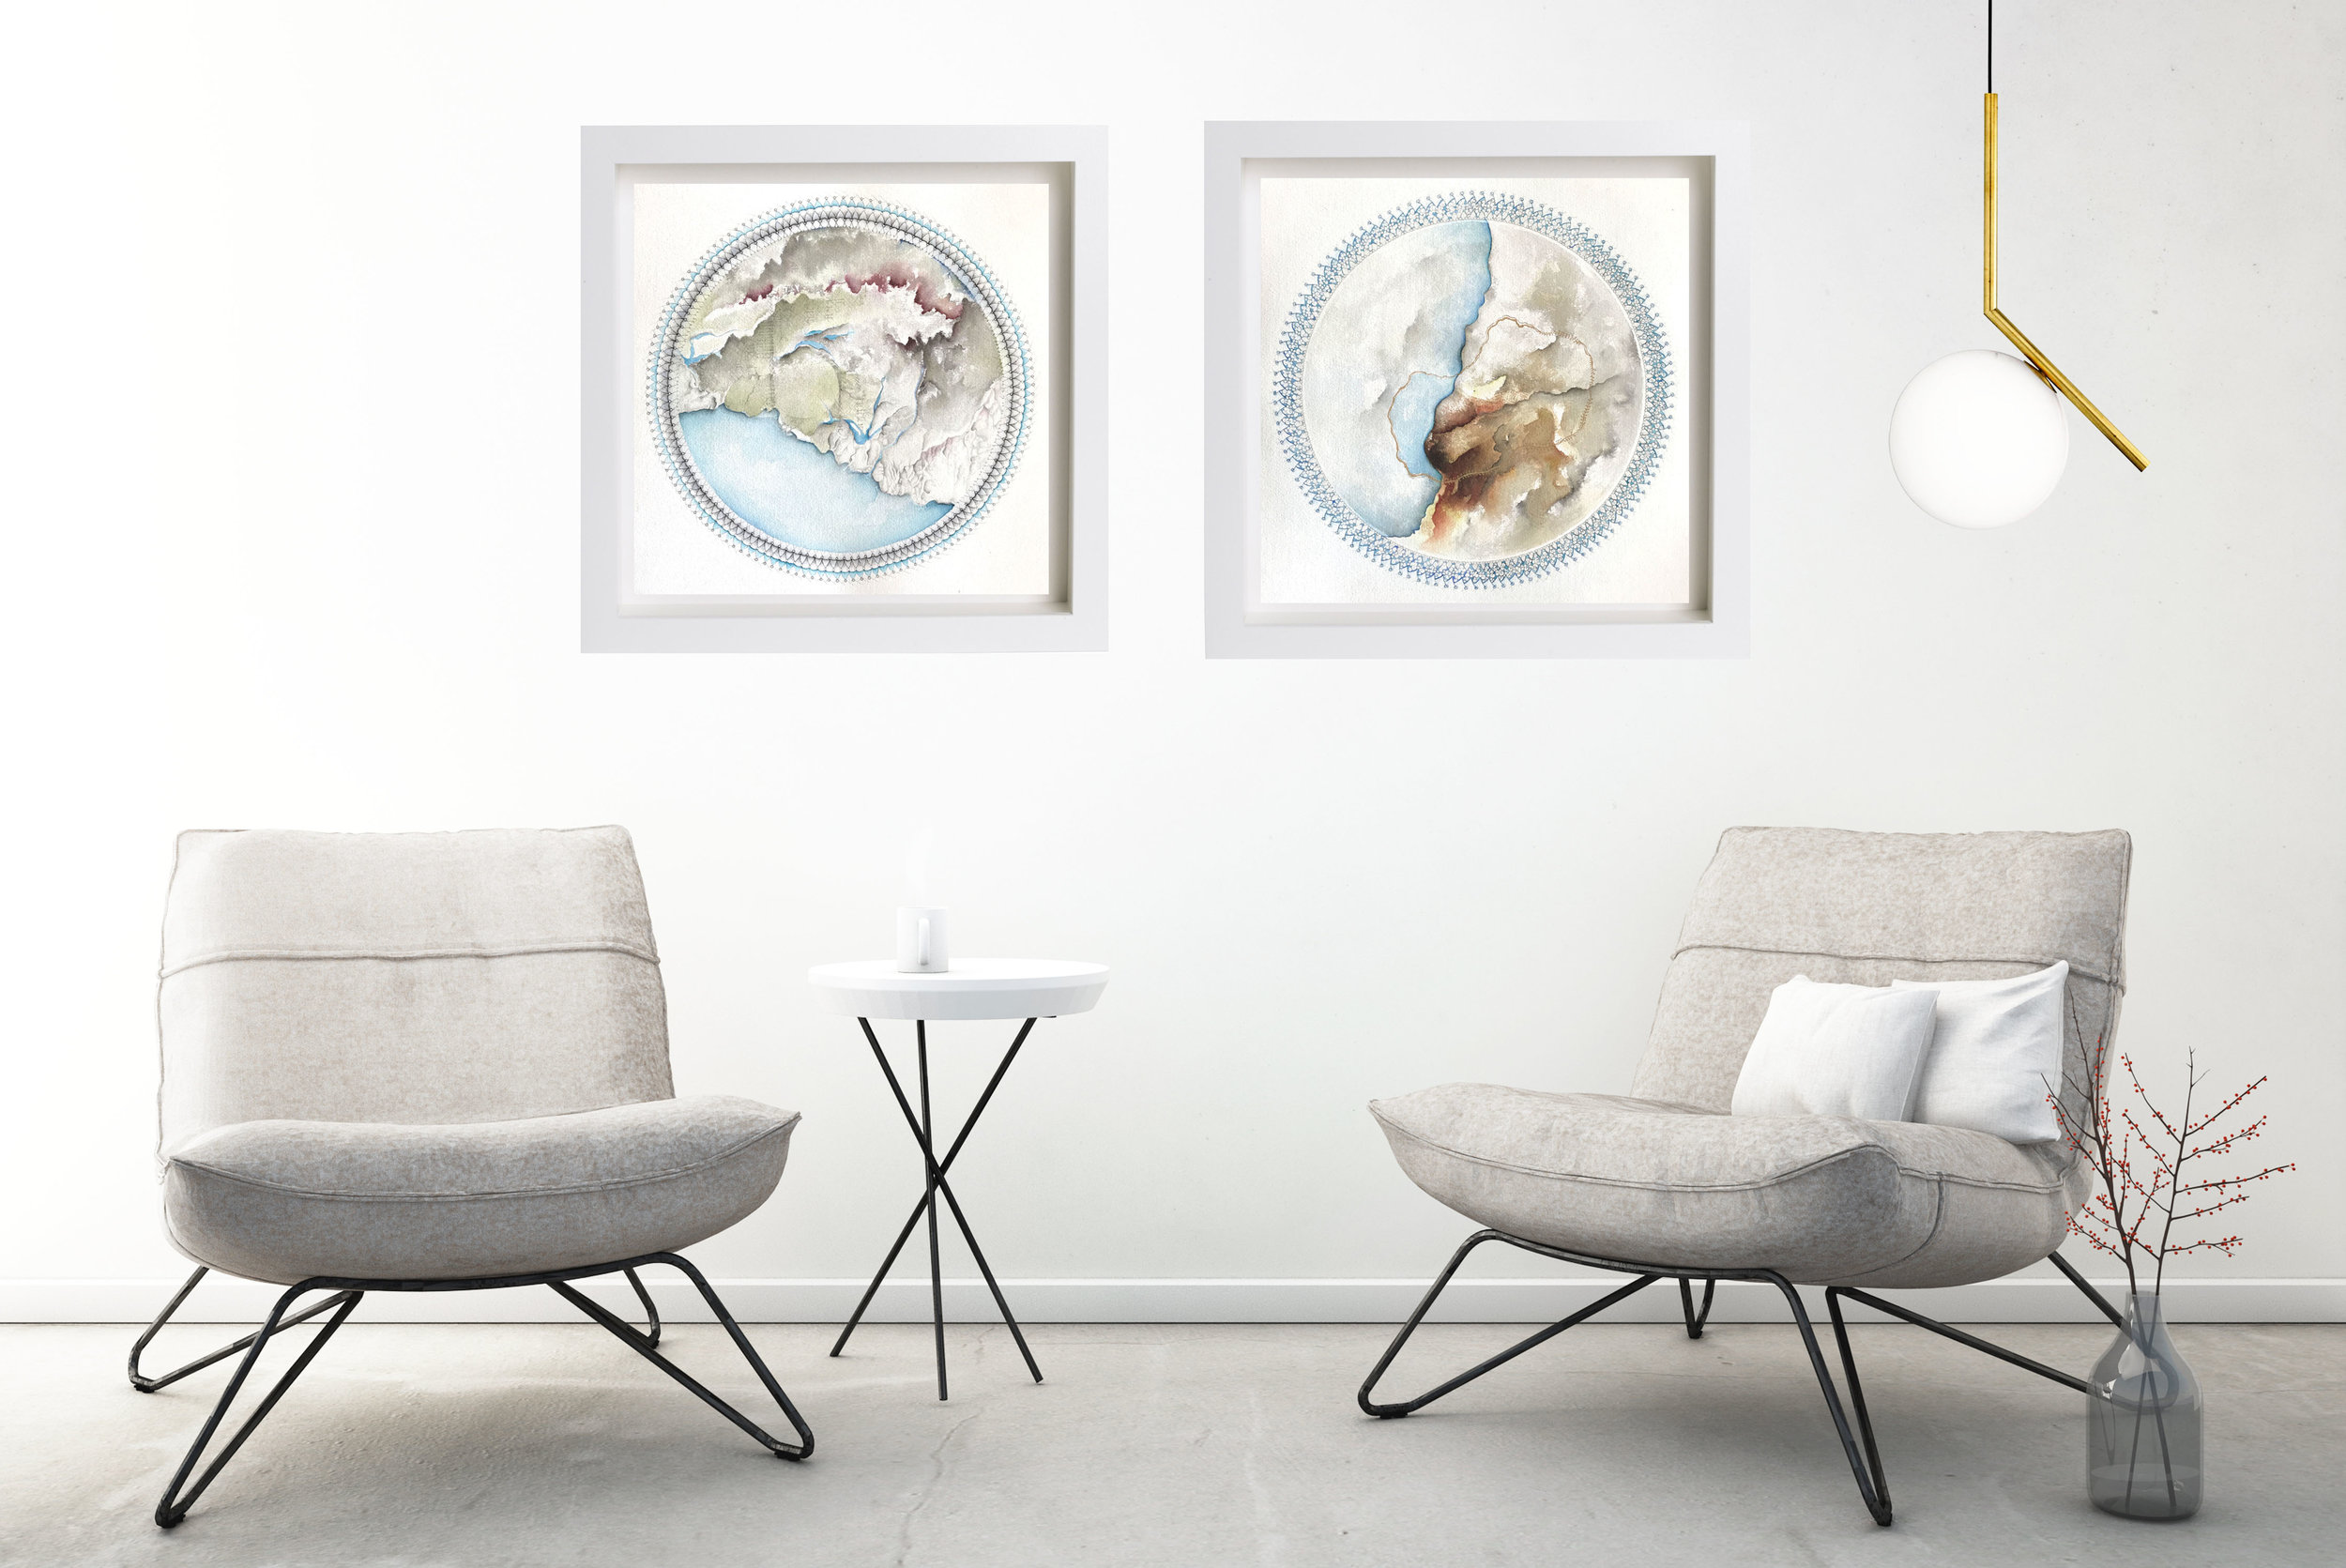 bortman_home_Chairs with Art.jpg